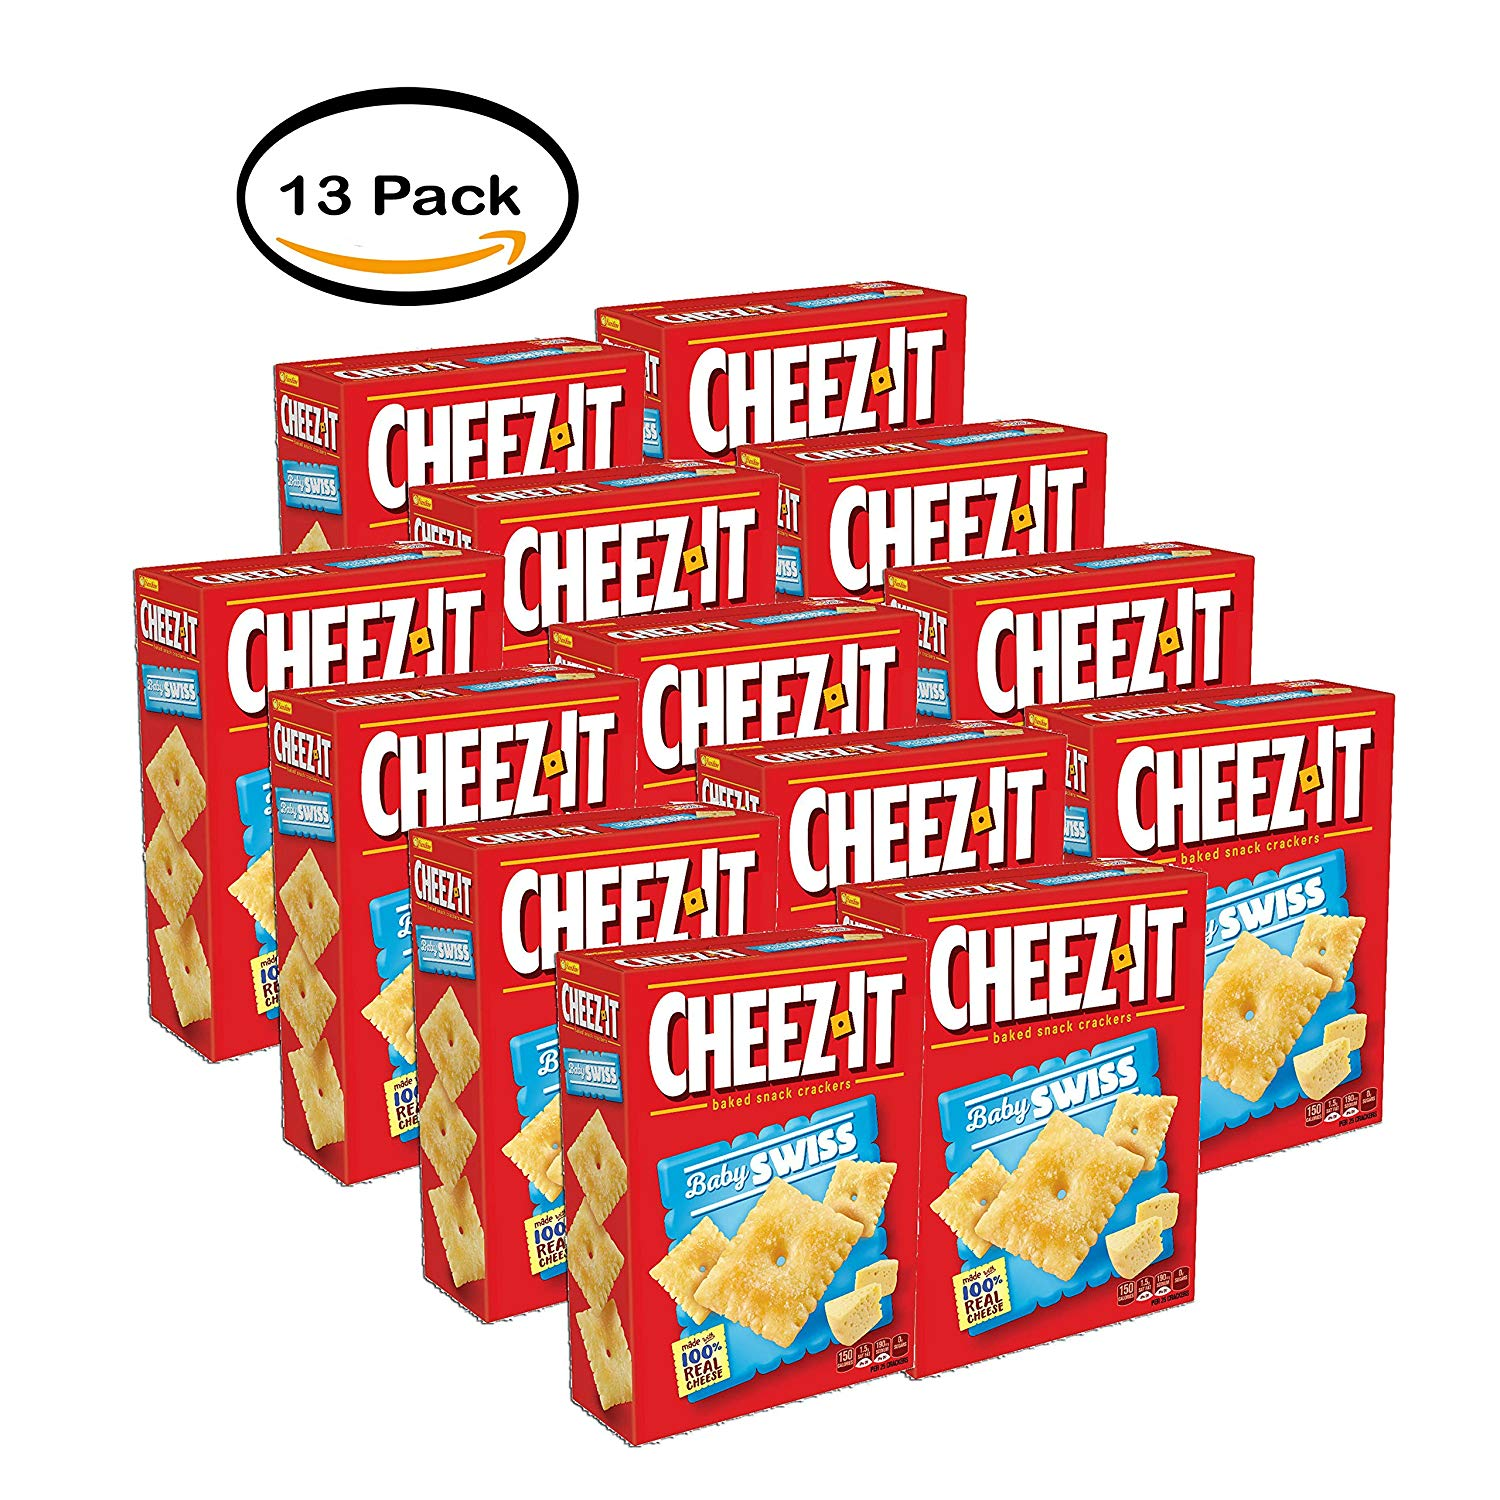 Chez crackers clipart vector library download Amazon.com: PACK OF 13 - Cheez-It Baby Swiss Baked Snack Crackers ... vector library download